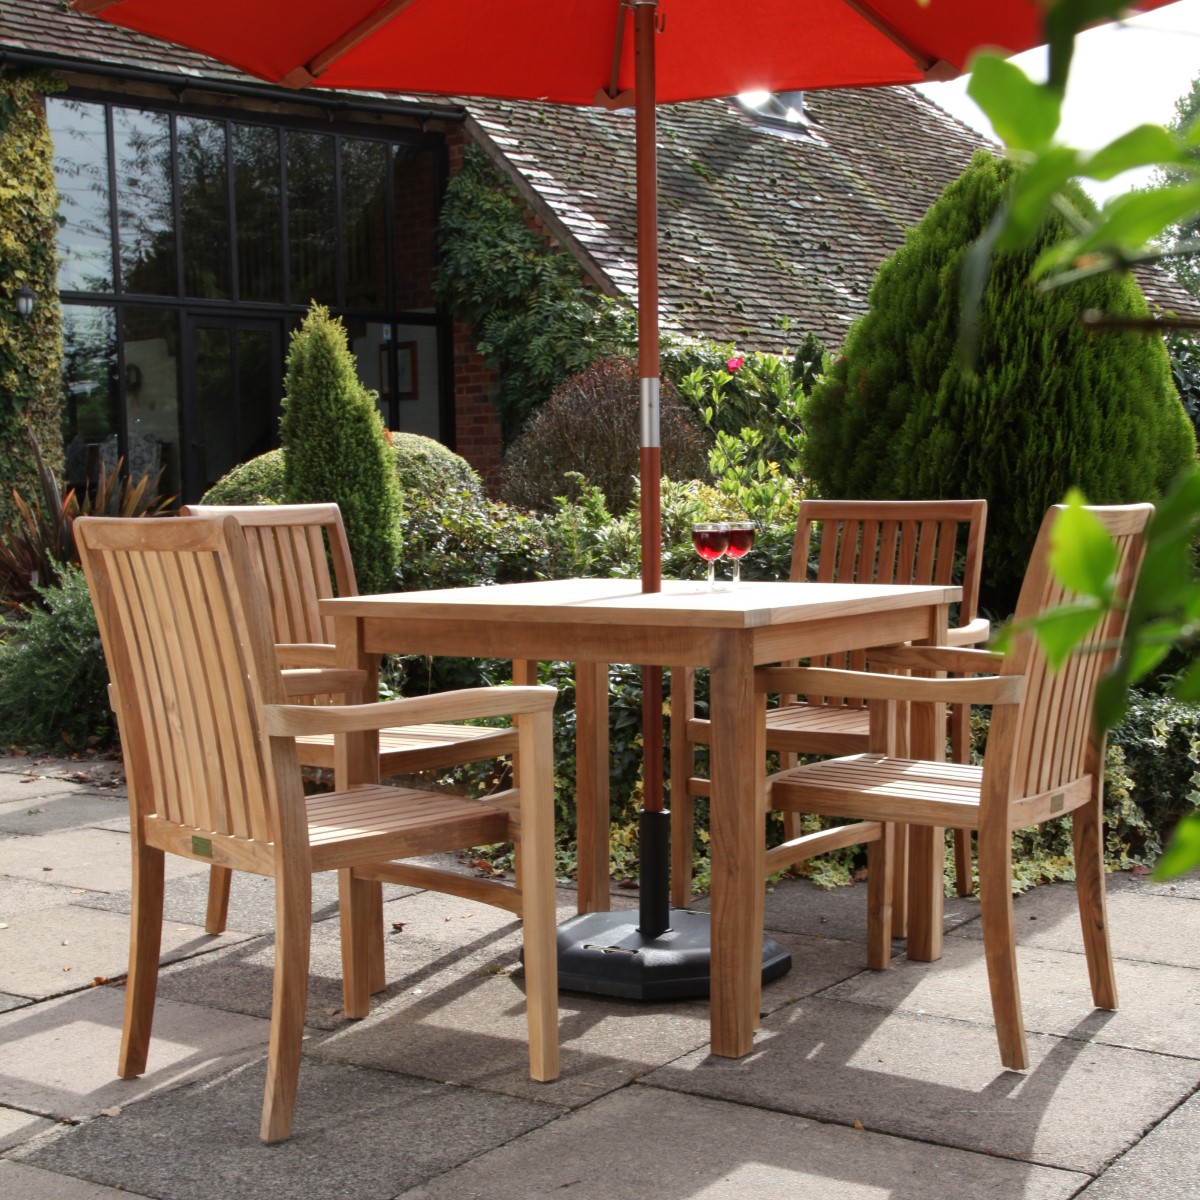 A teak outdoor square dining table and four armchairs on a patio with a red parasol